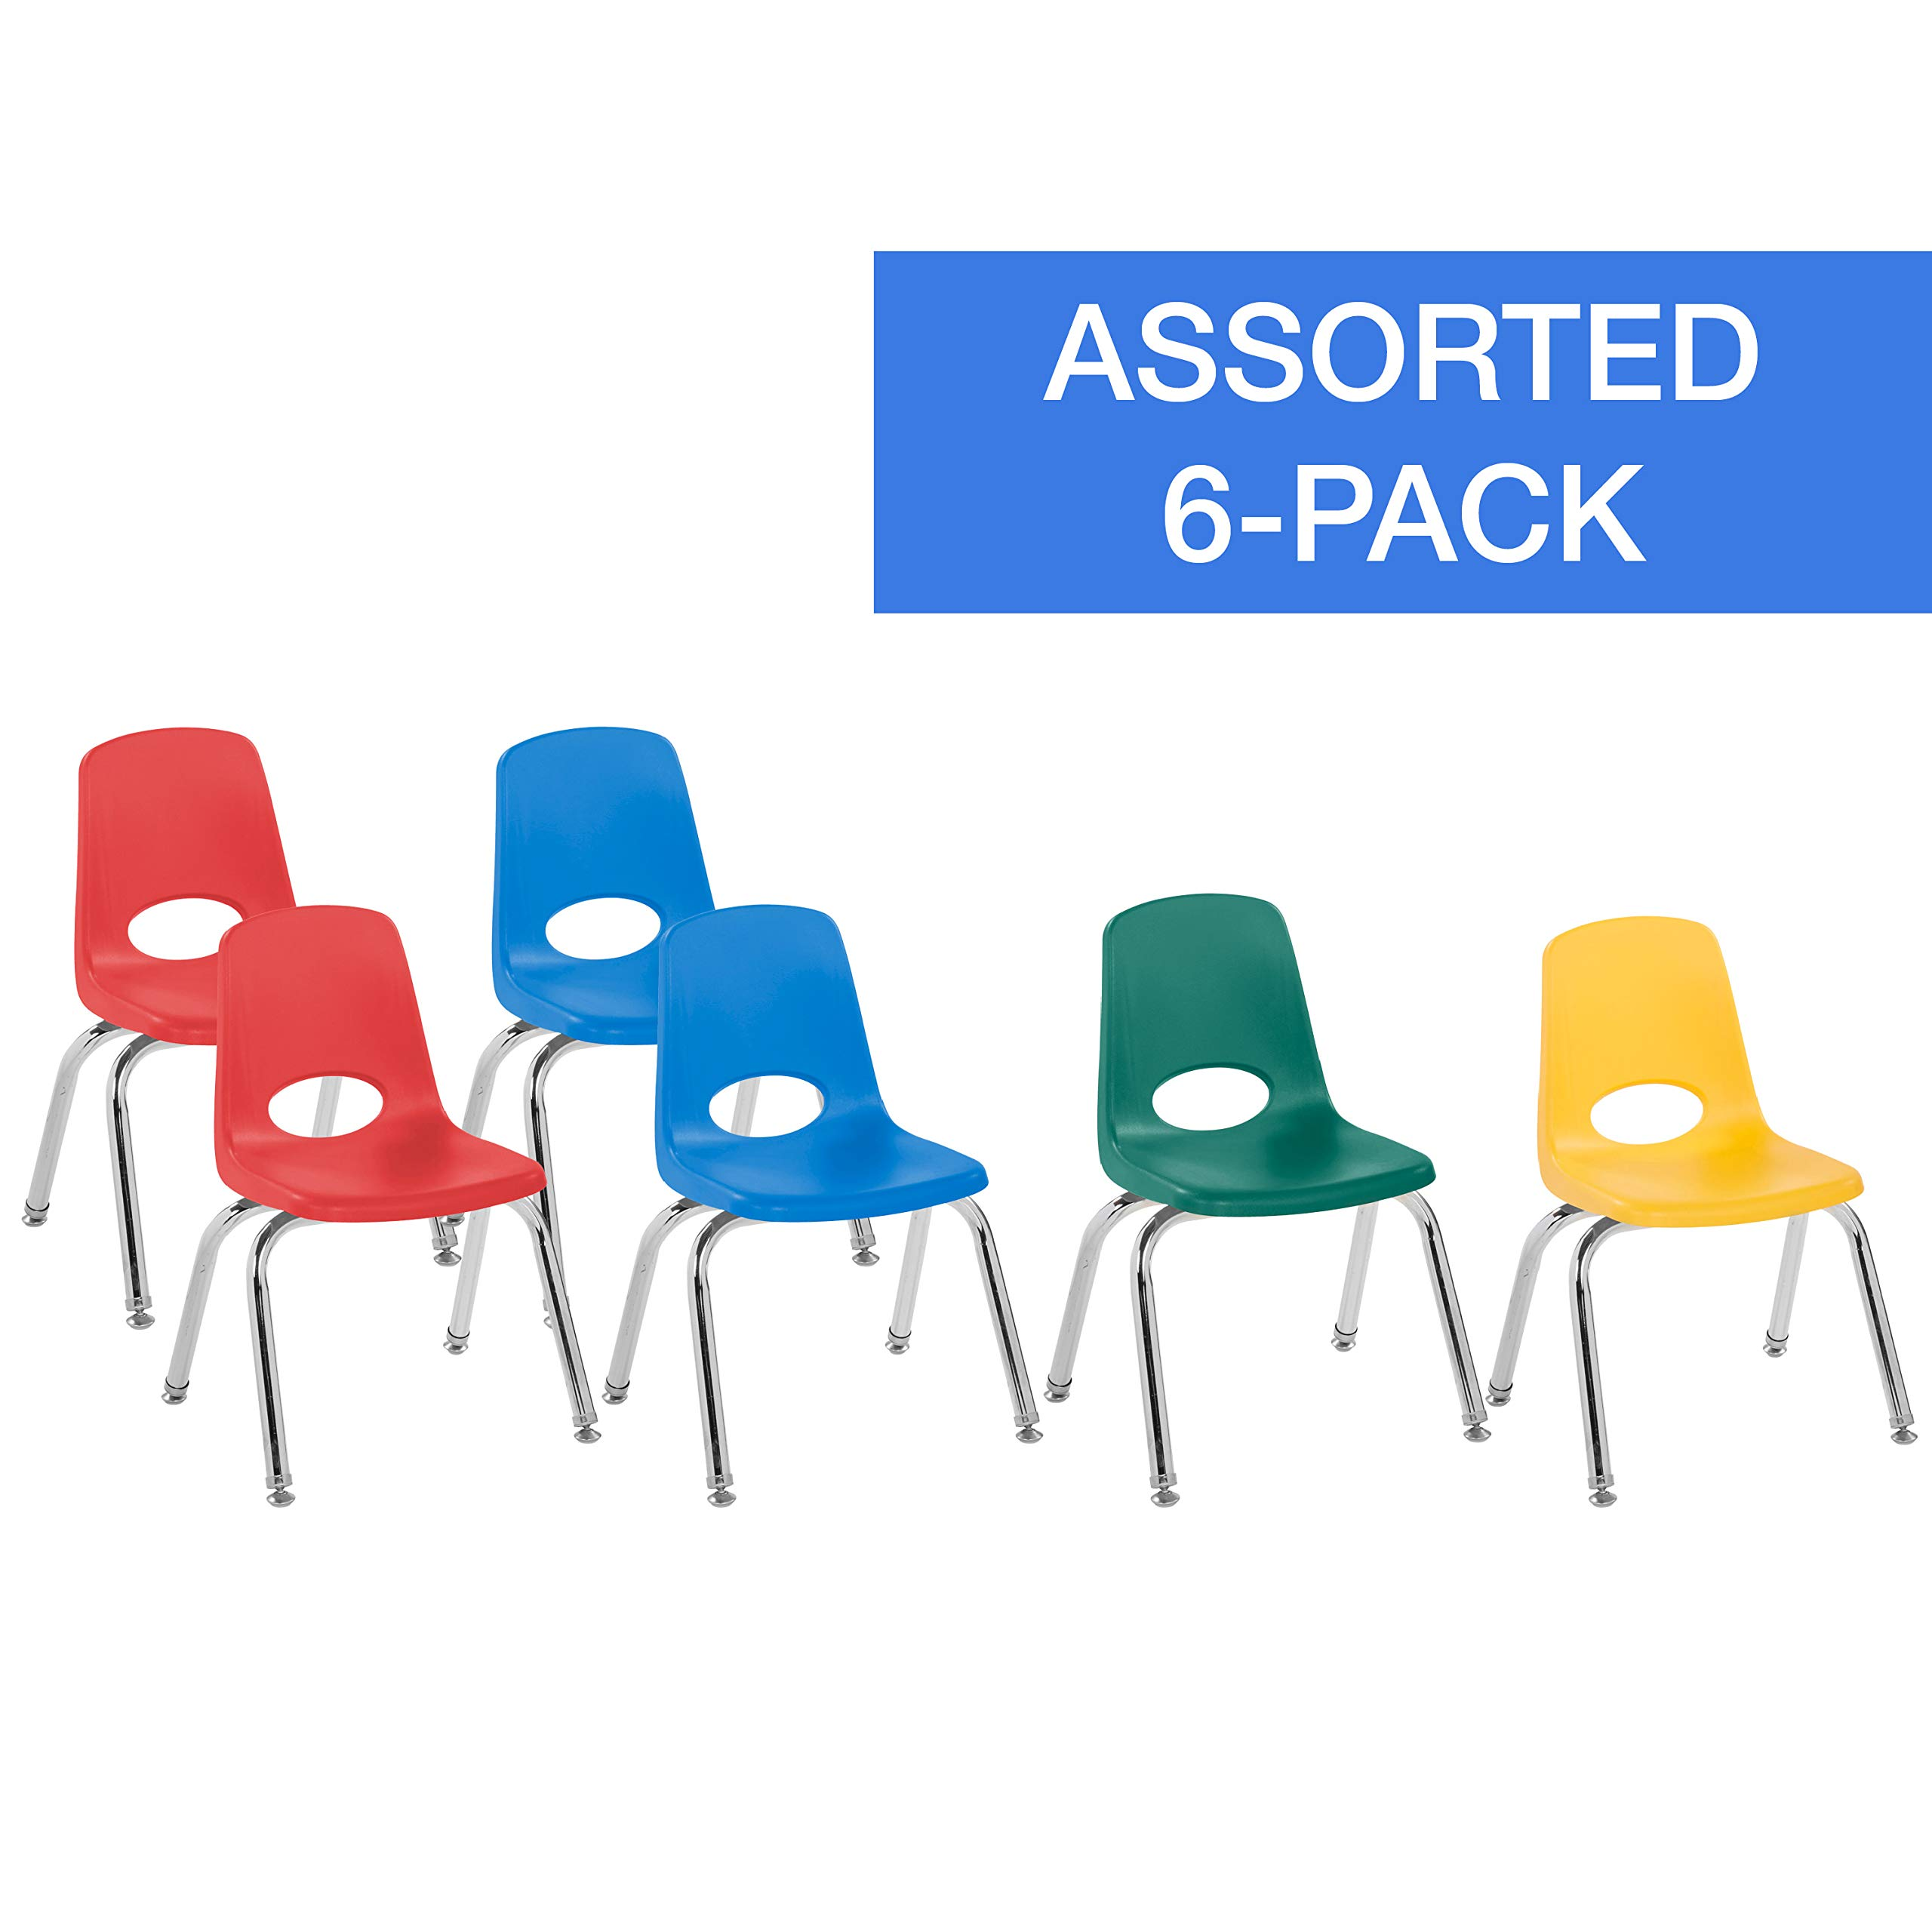 FDP 12'' School Stack Chair, Stacking Student Chairs with Chromed Steel Legs and Nylon Swivel Glides - Assorted Colors (6-Pack) by Factory Direct Partners